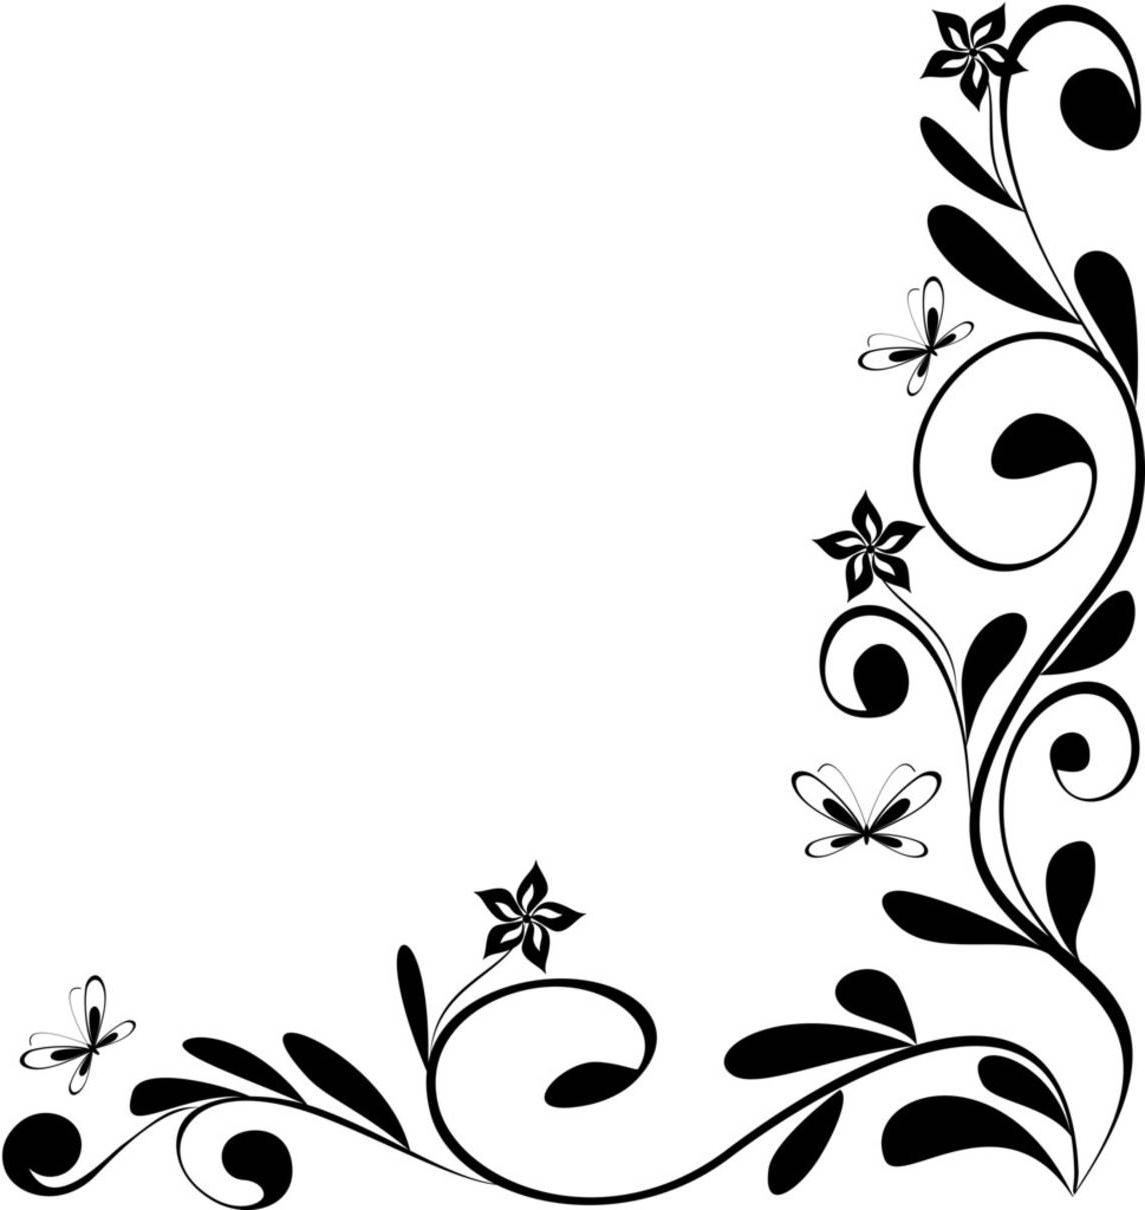 Leaf Border Clipart Black And White